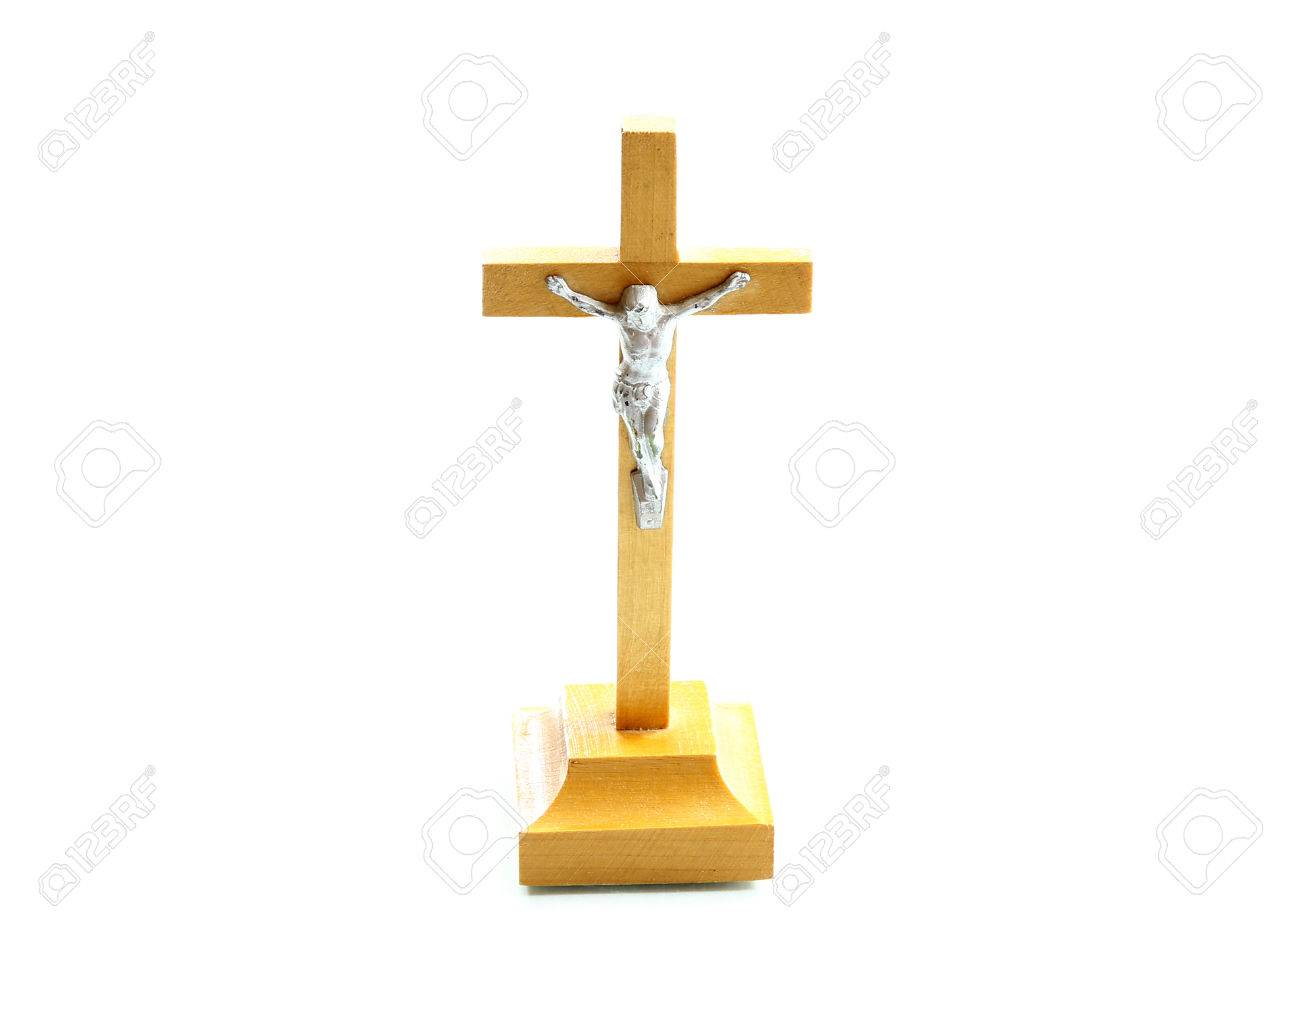 very simple wooden holy crucifix jesus christ on cross white